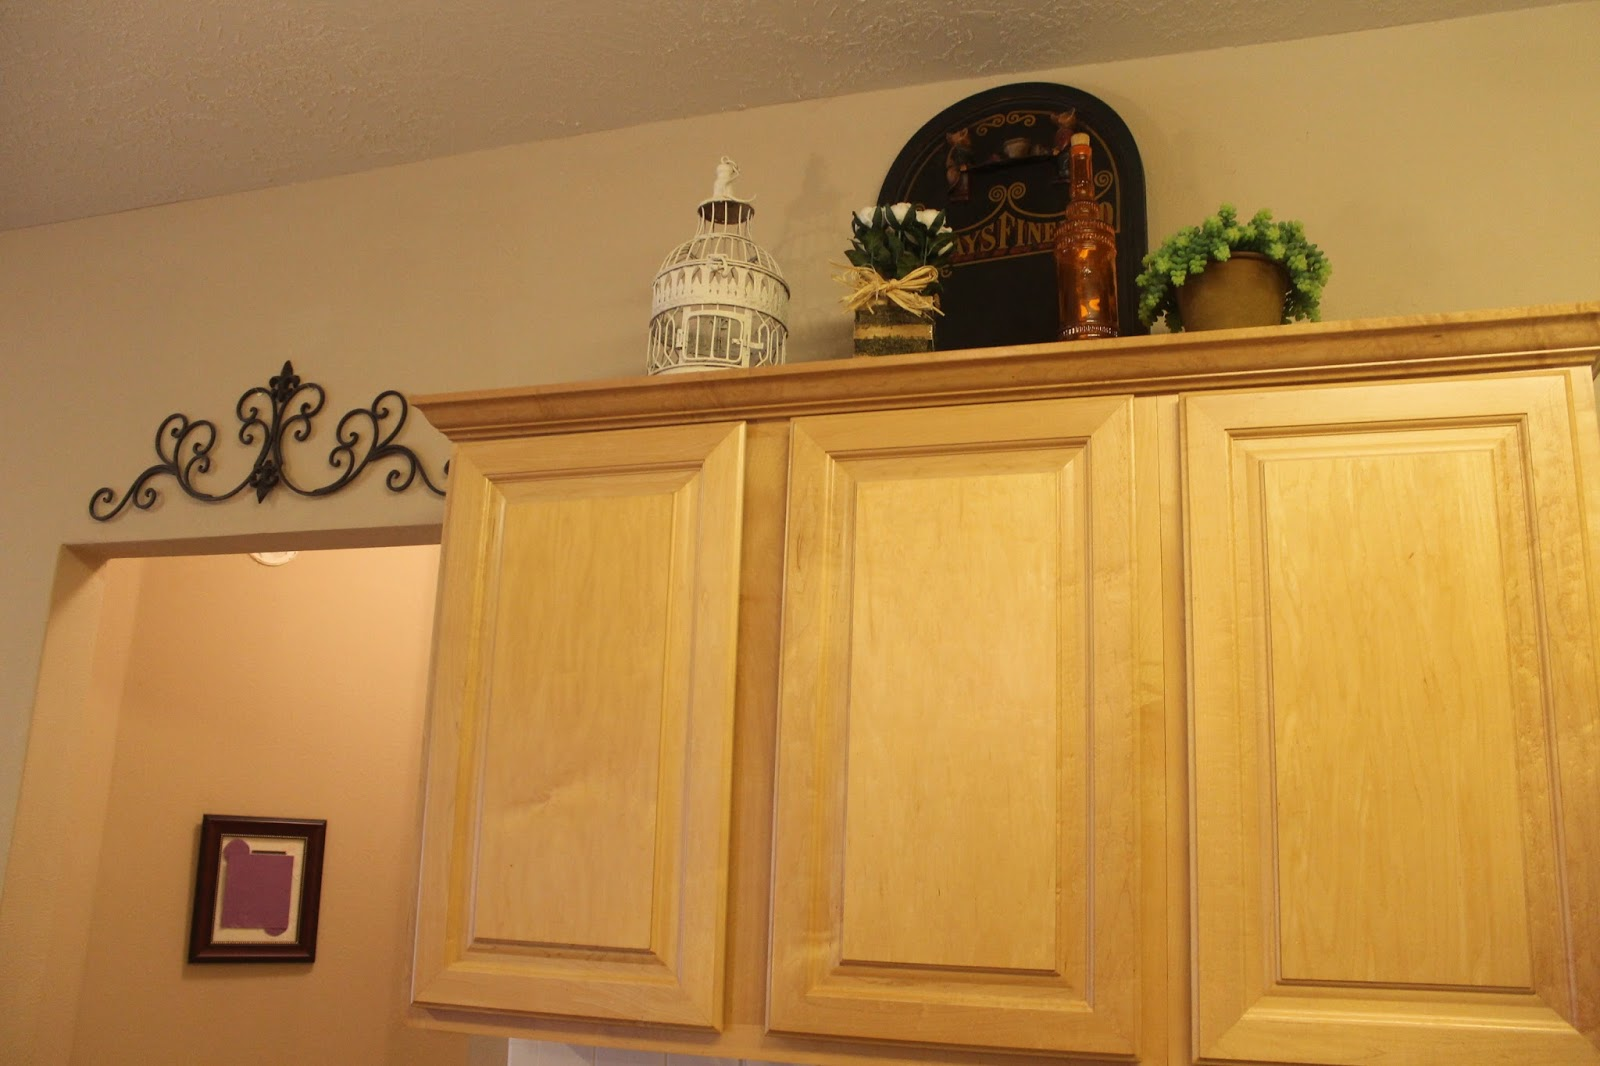 Texas Decor: Rearranging the Tops of My Kitchen Cabinets